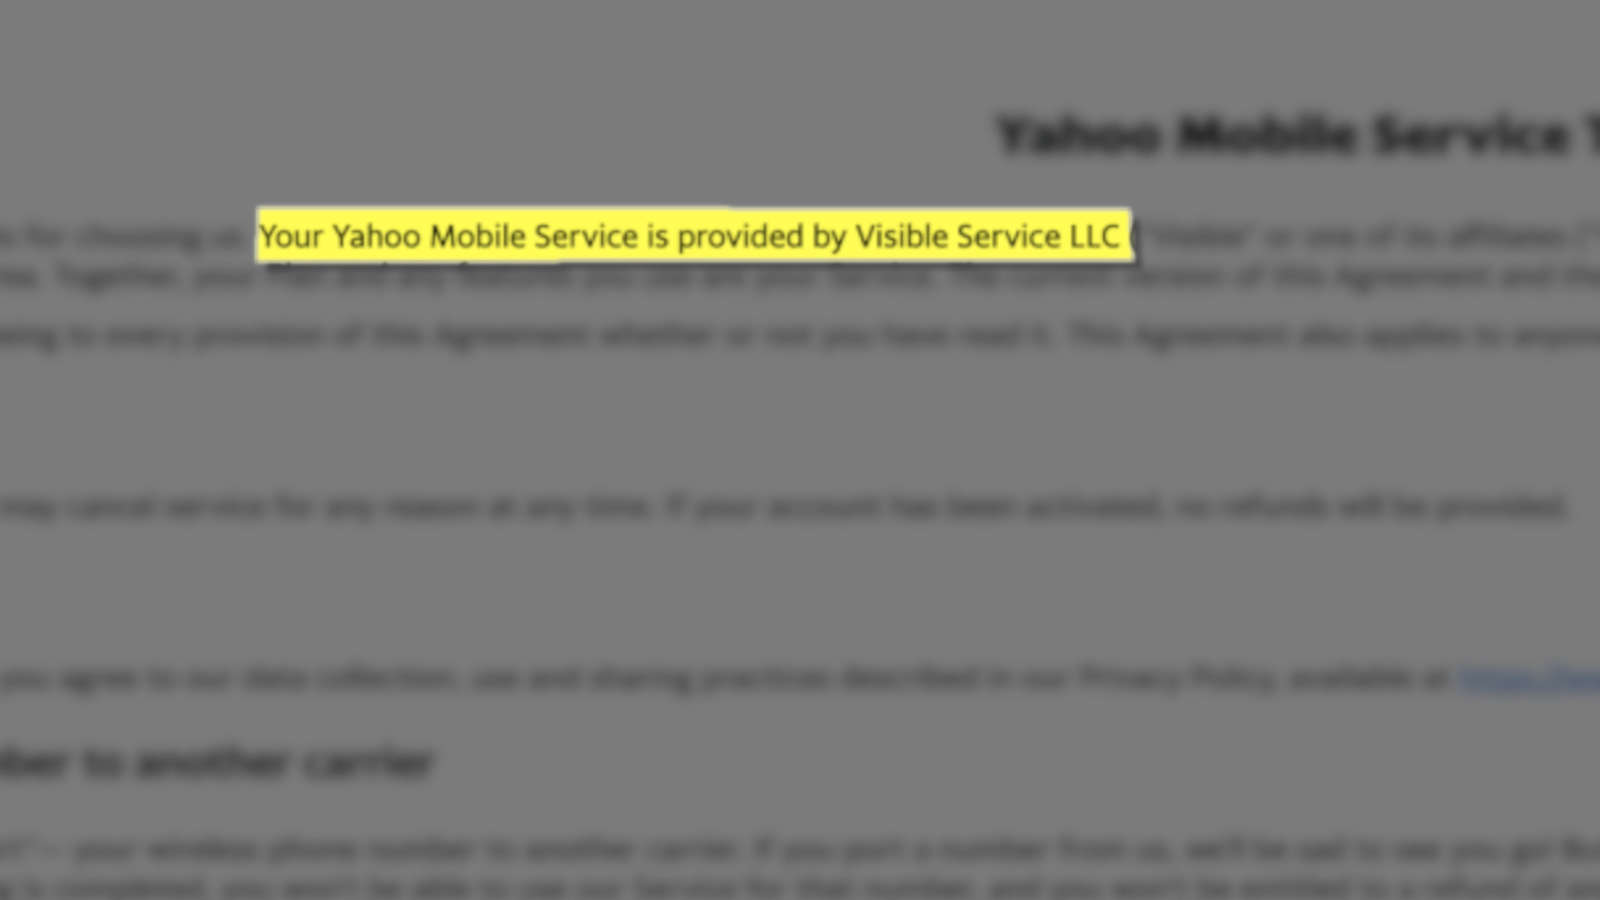 The first line of Yahoo Mobile's Terms of Service indicate the service is actually provided by Visible Service LLC